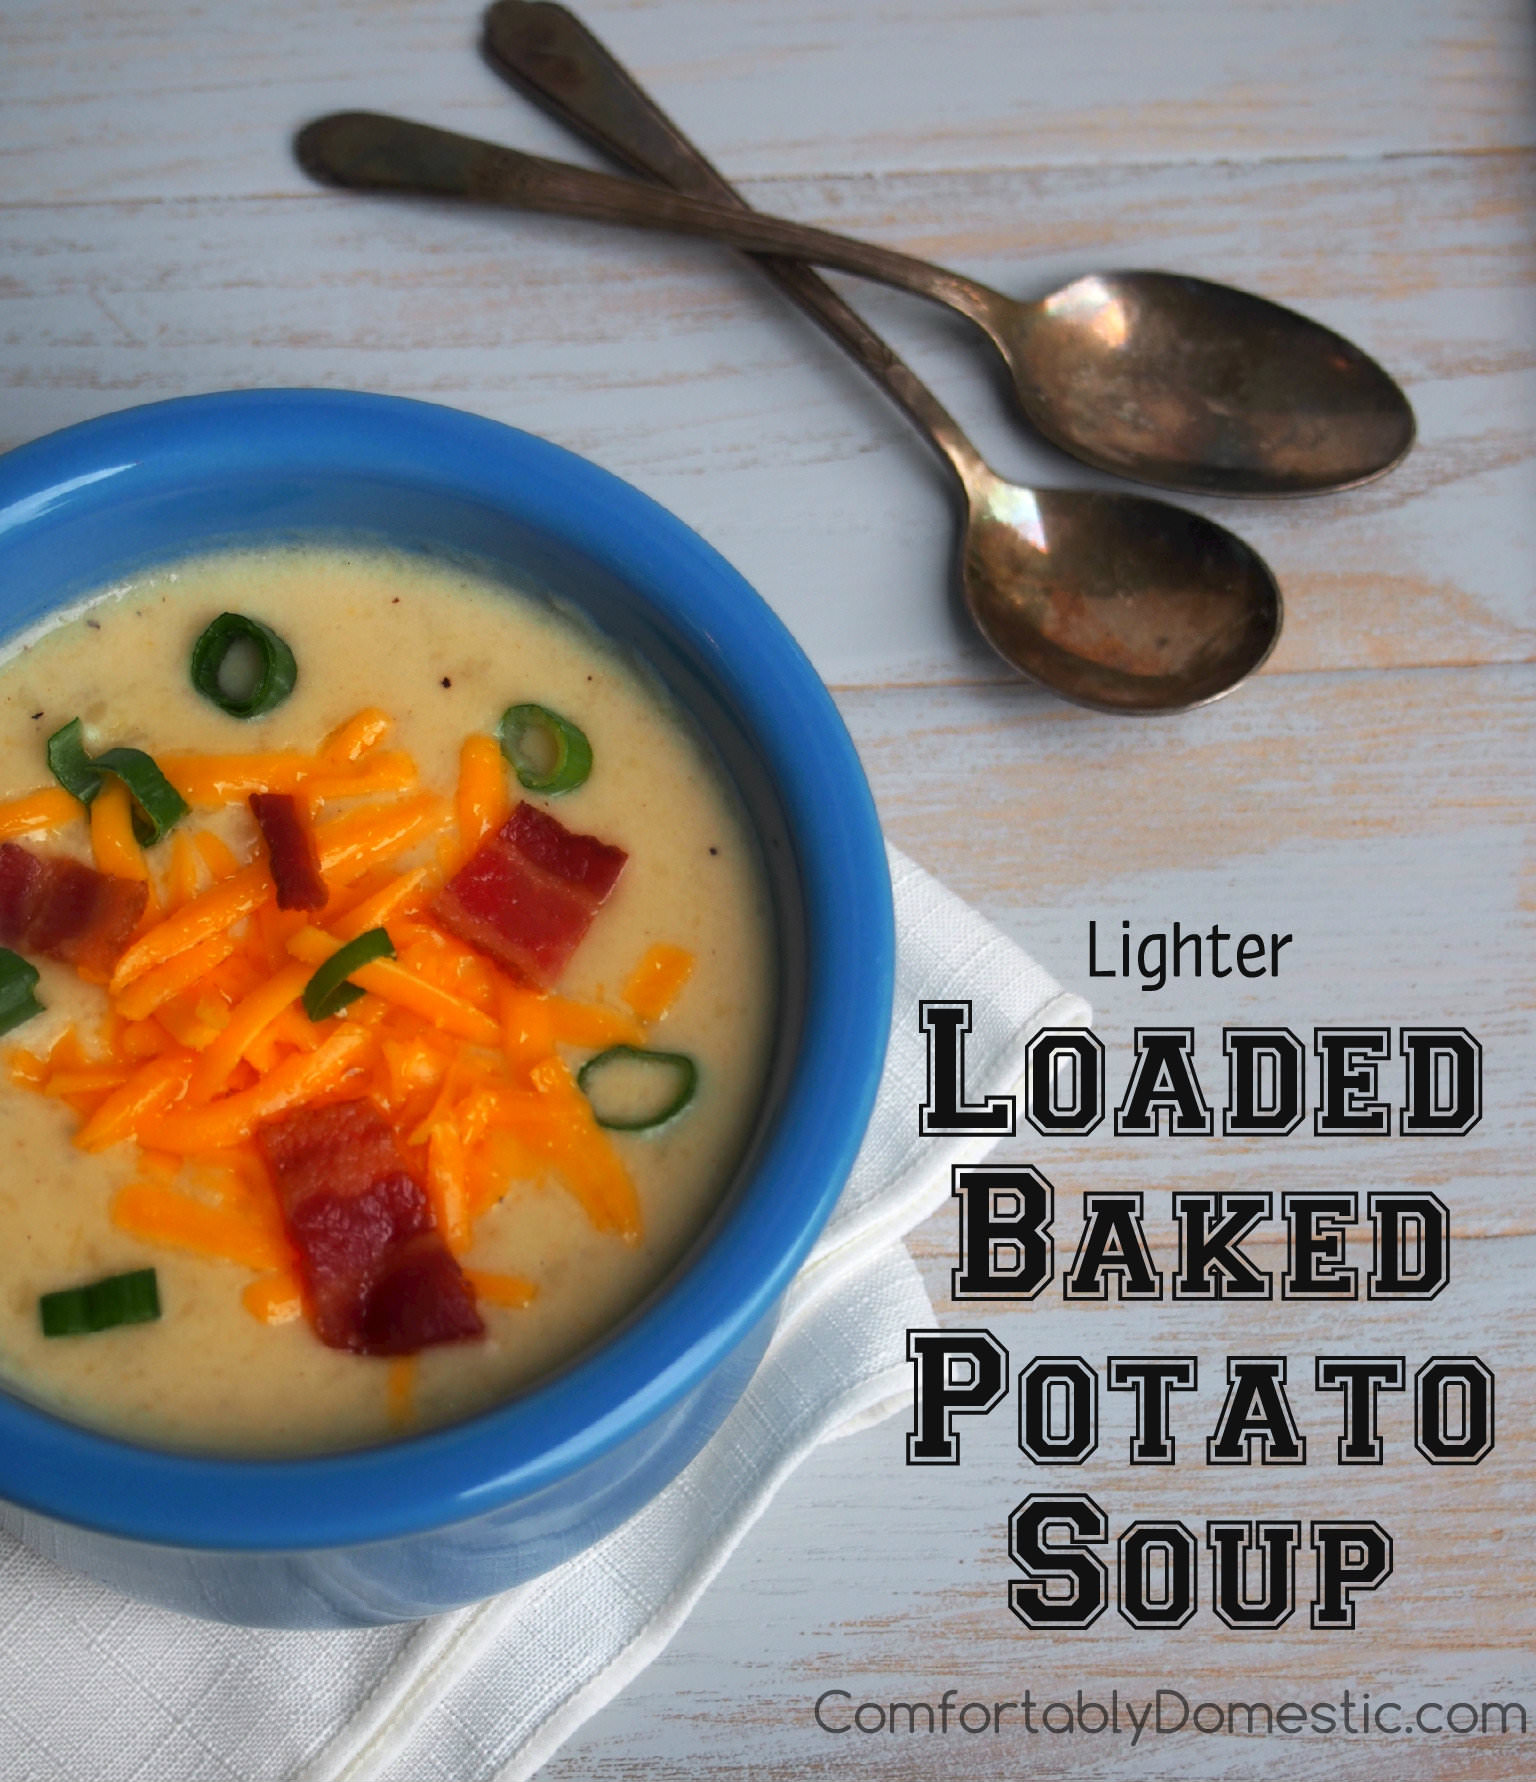 Lighter Loaded Baked Potato Soup | ComfortablyDomestic.com